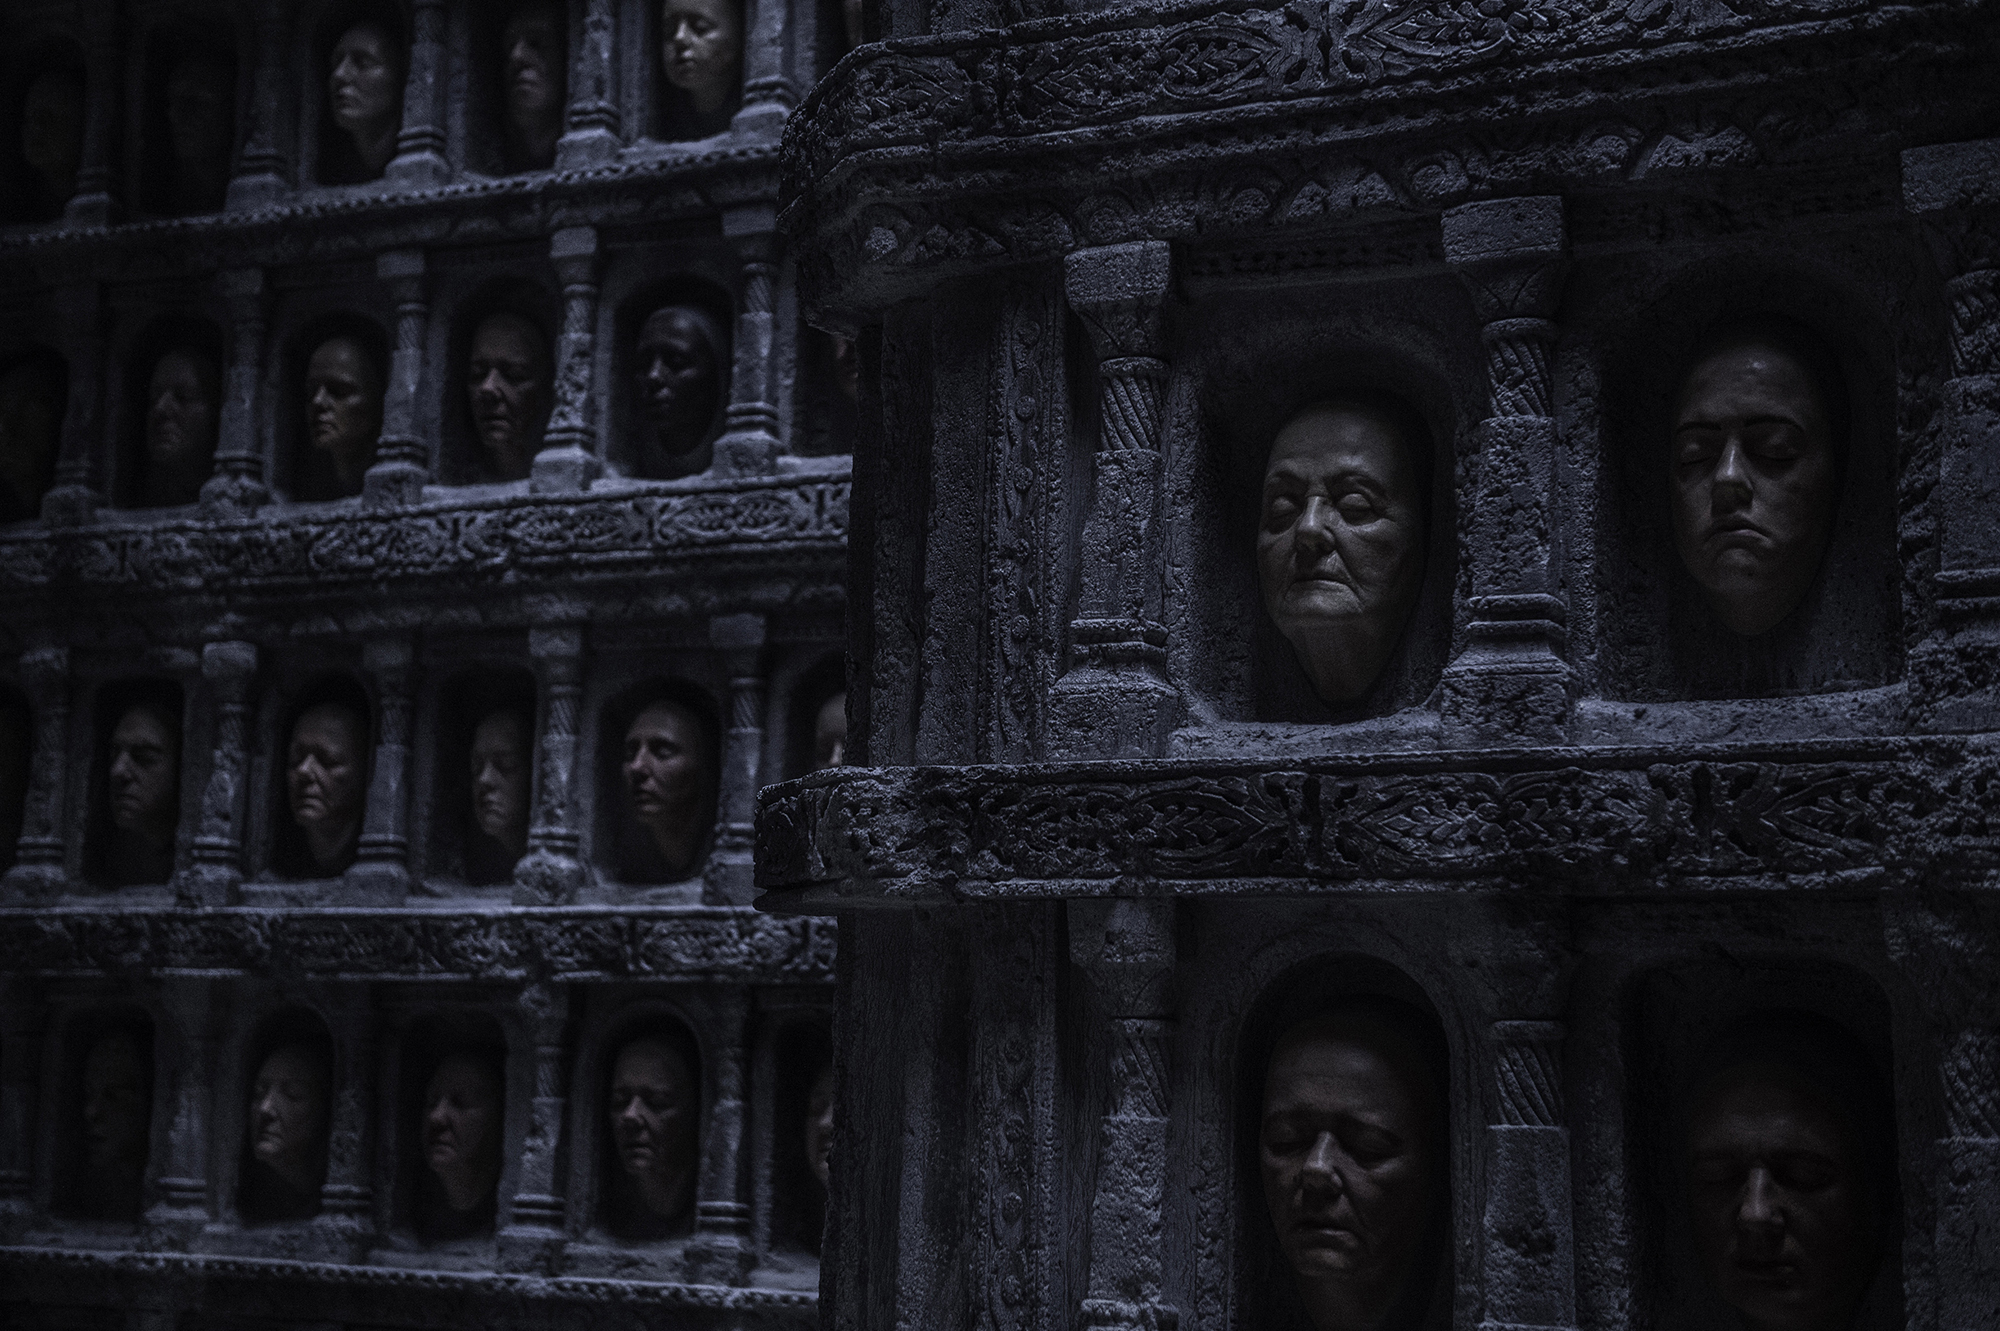 House of Black and White in 'Game of Thrones'. HBO.